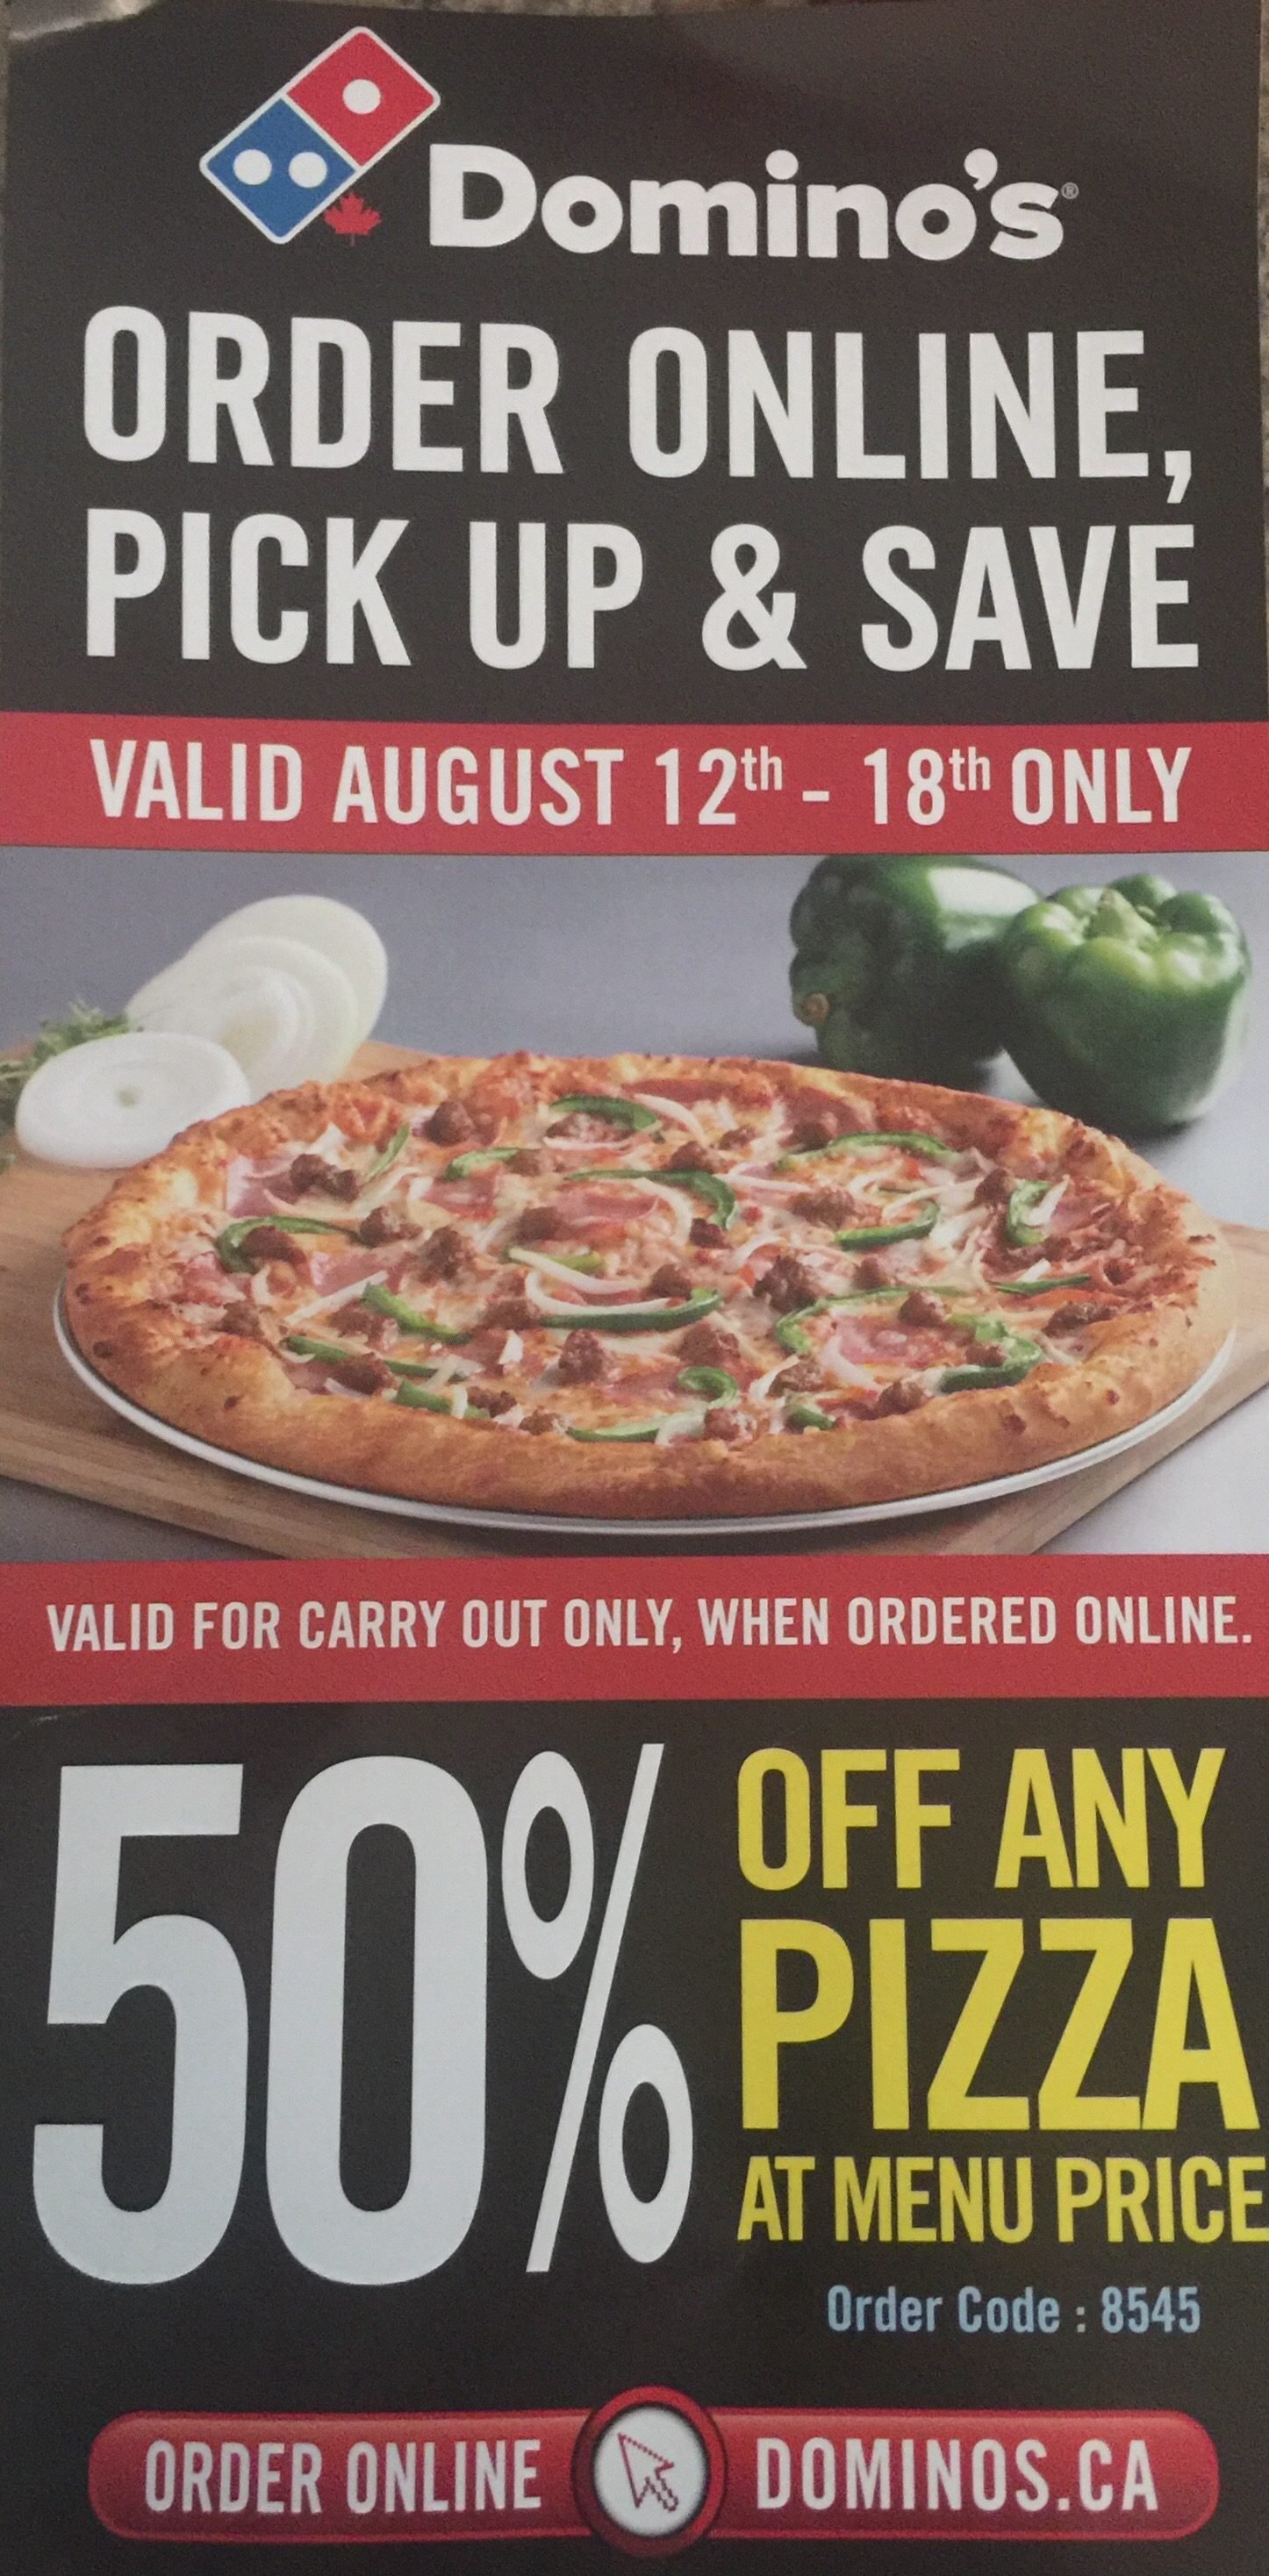 Domino's Pizza: 50% Off All Pizzas Until August 18